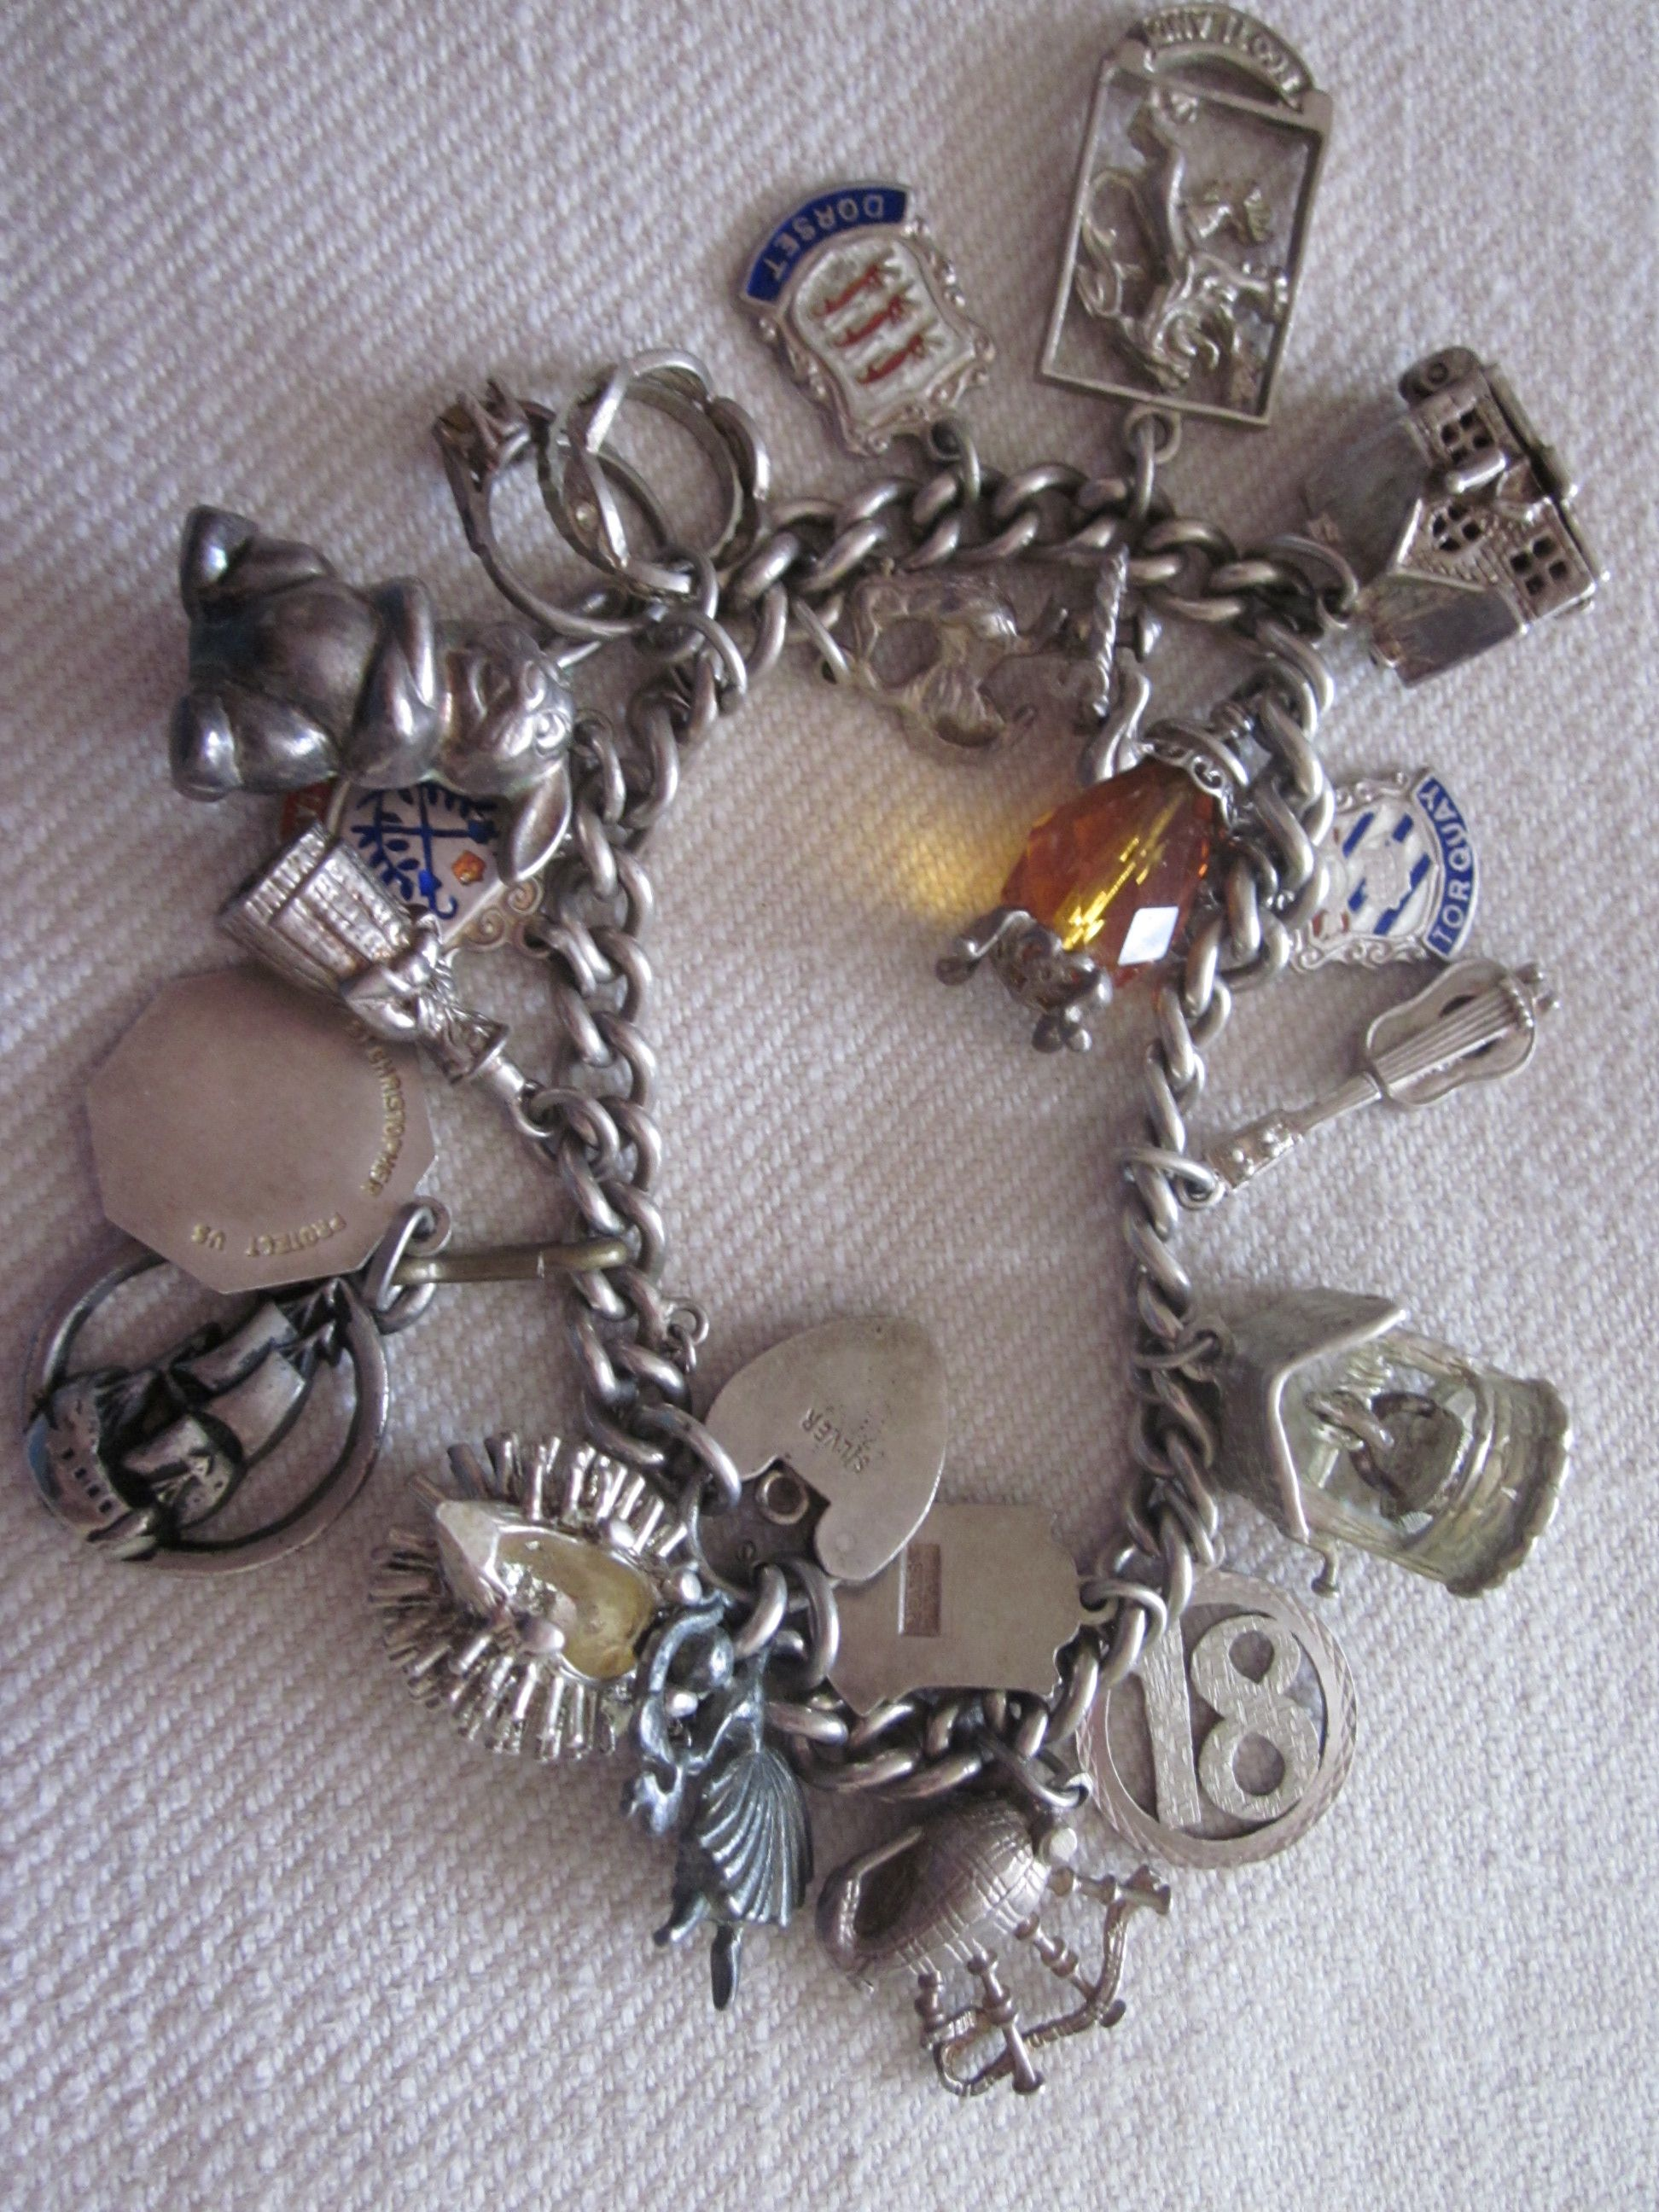 635bd85a61a 1960's charm bracelet, so much fun to collect charms that meant something  to my life.